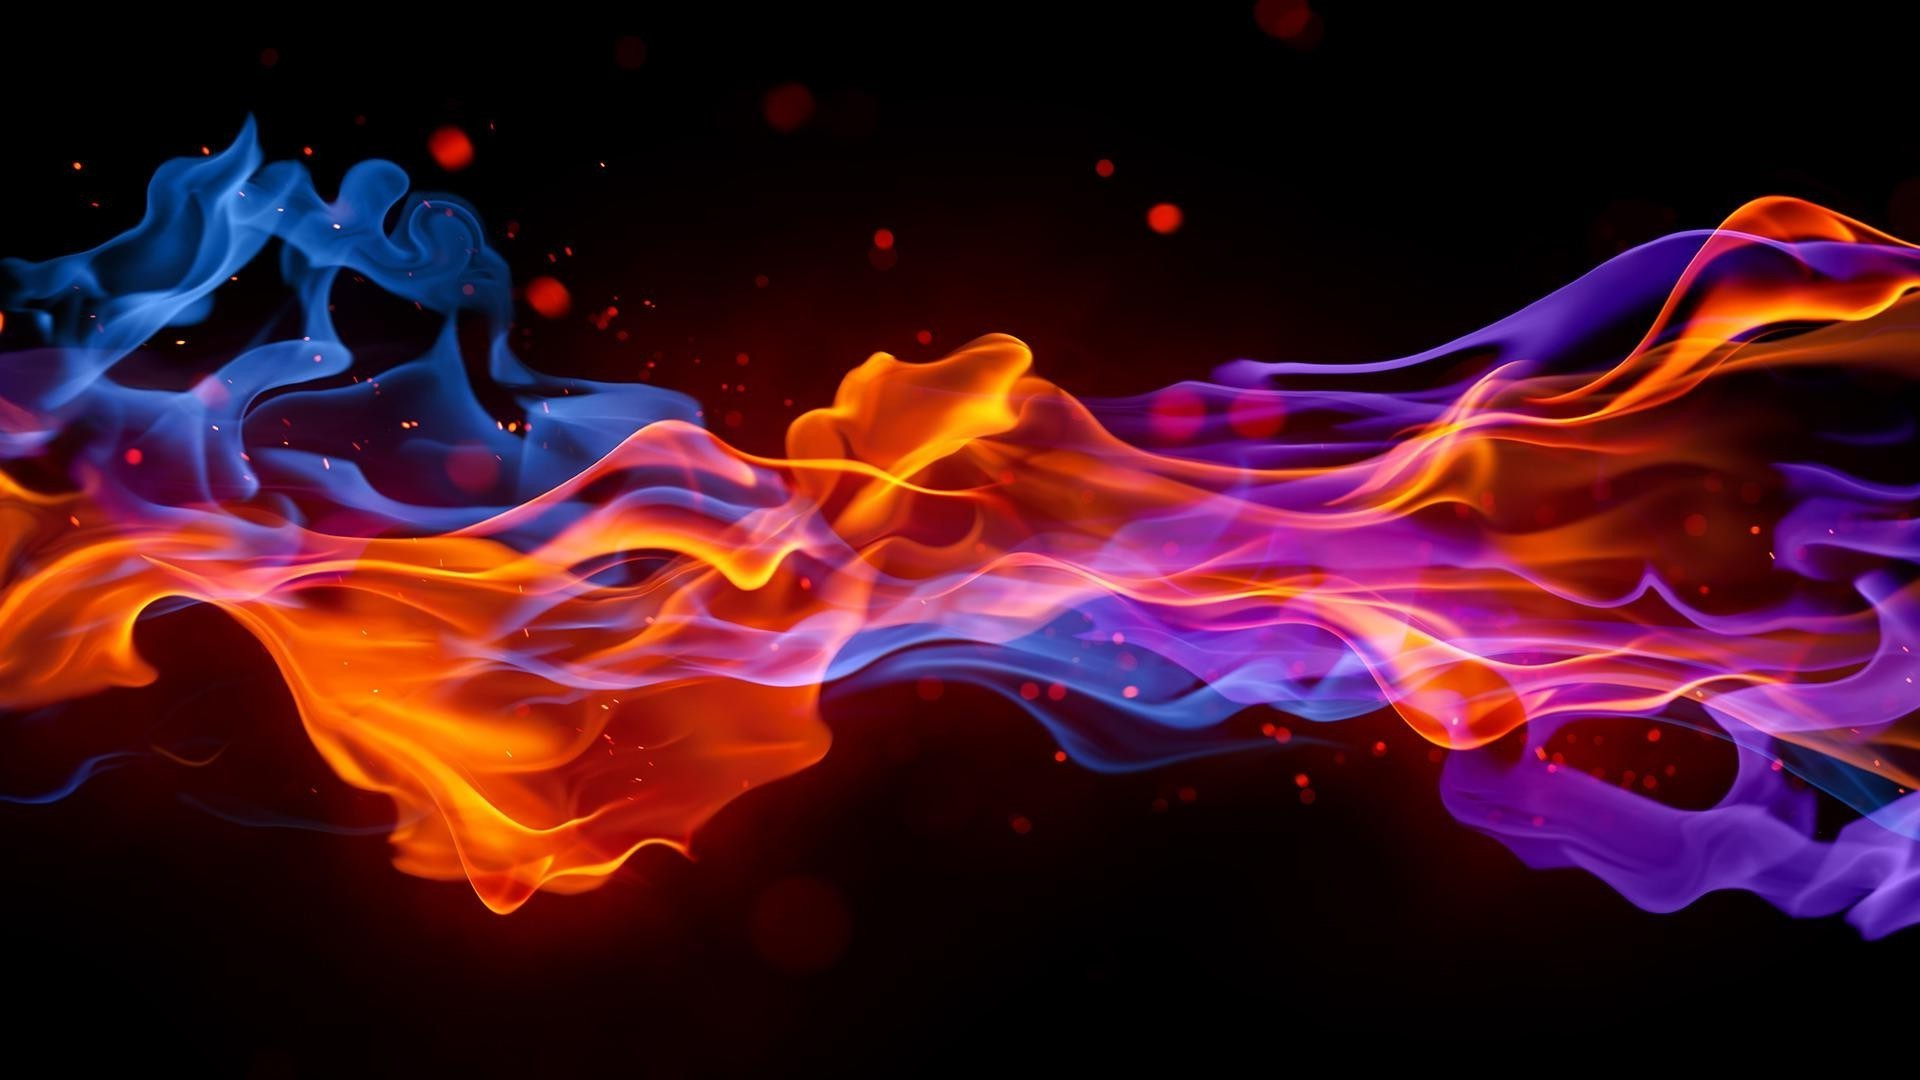 abstract and graphics flame abstract burnt burn smoke design energy motion heat background hot wallpaper magic dynamic flammable flow wave pattern danger bonfire